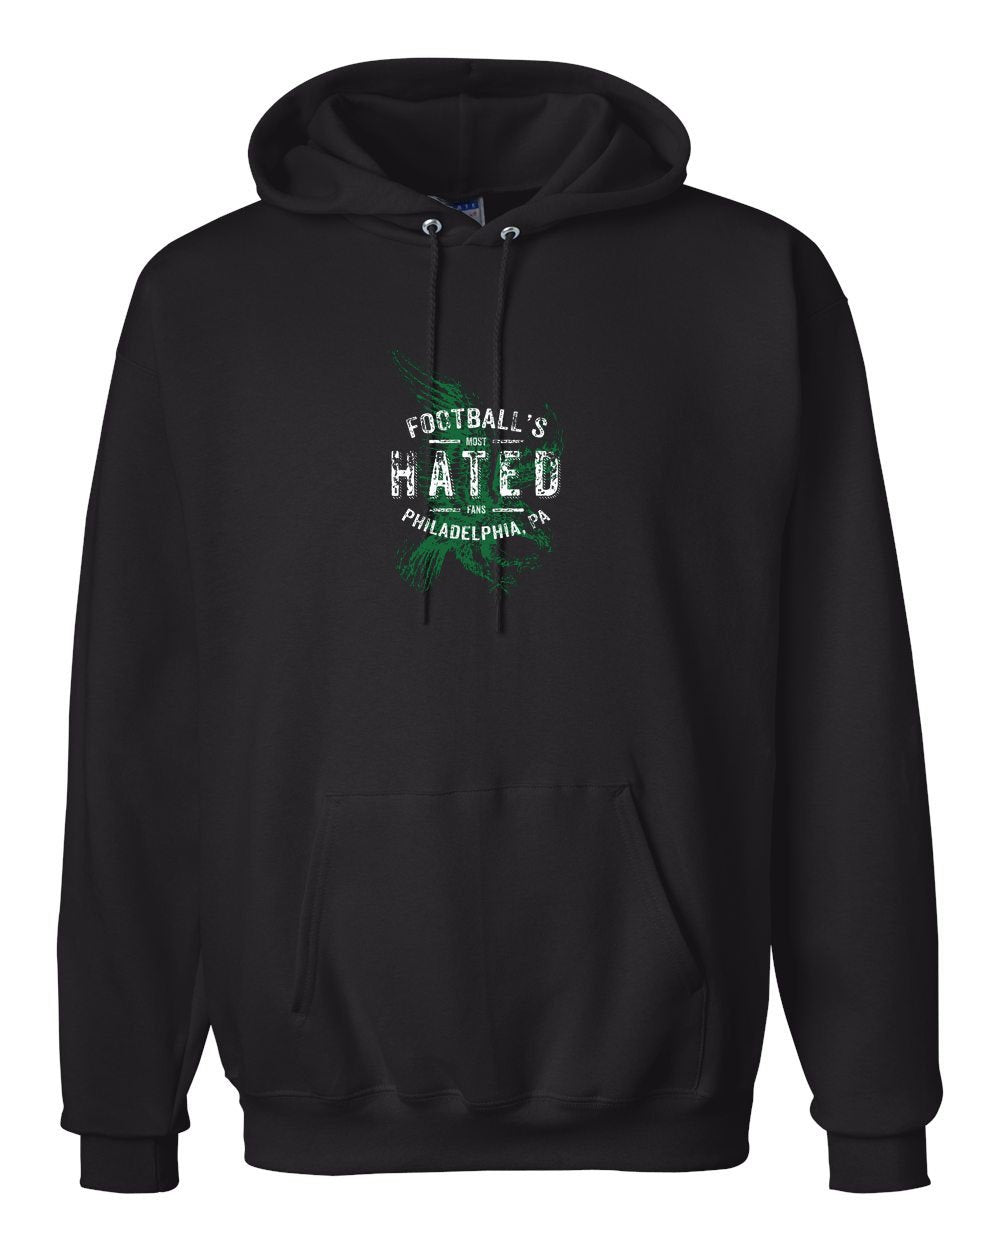 Most Hated Fans Hoodie